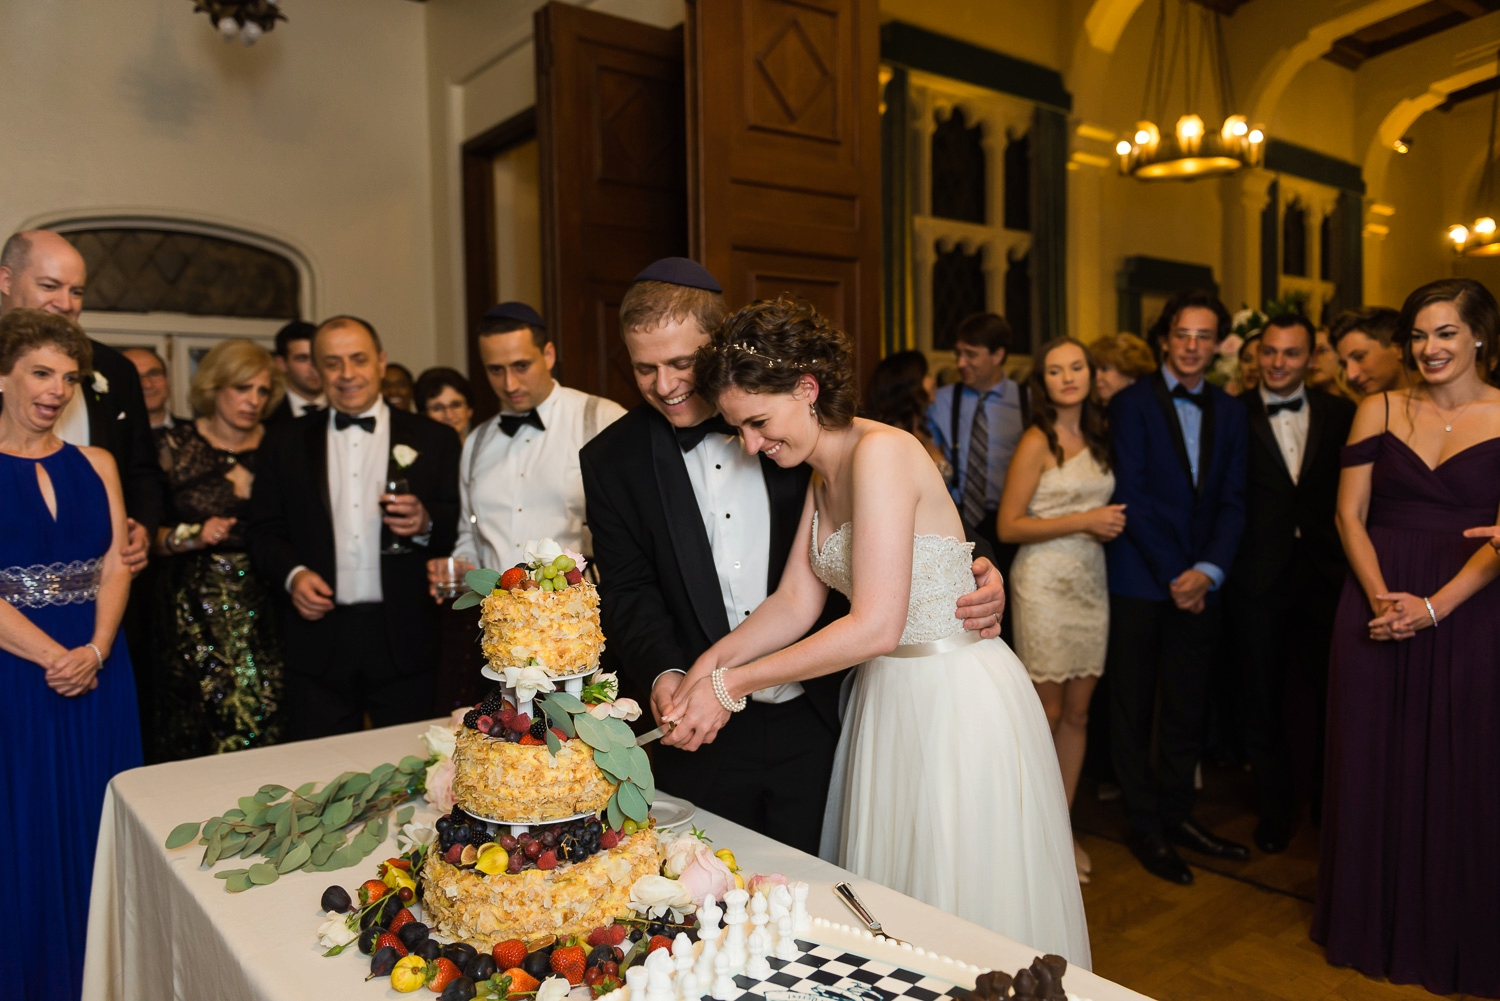 Bride and groom laughing as they cut the cake